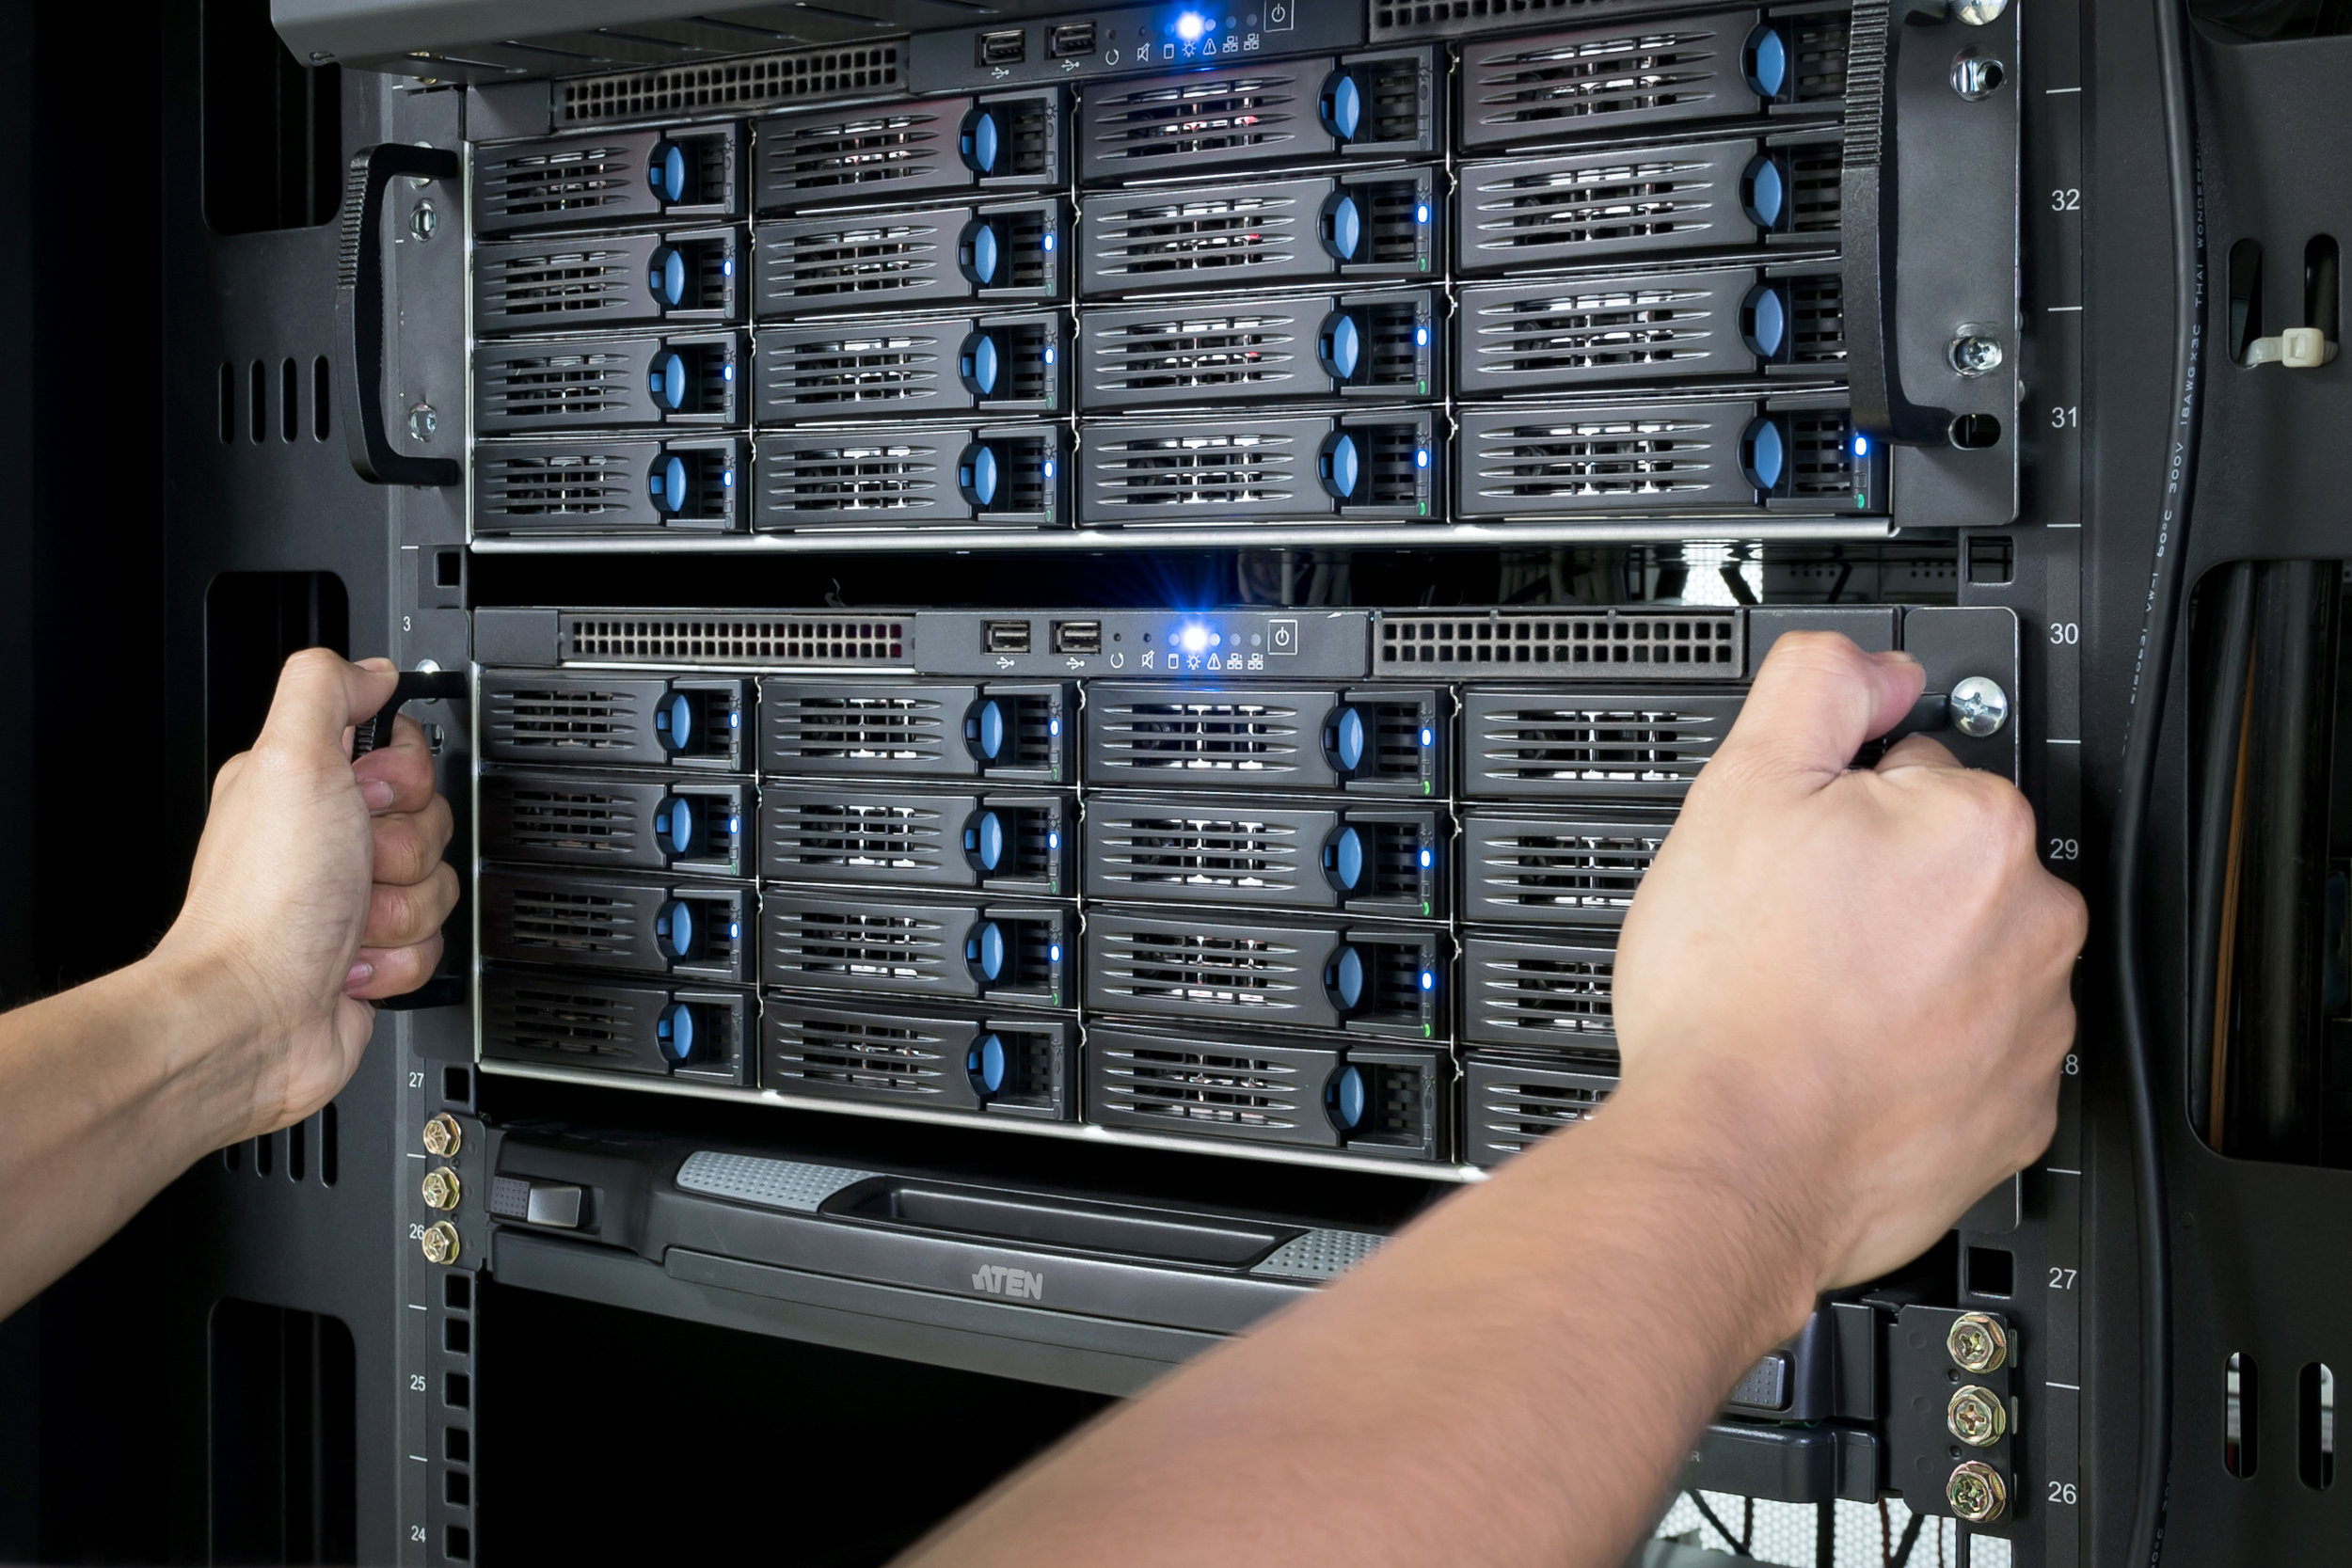 Vote of requirements for servers should pave the way to an ambitious Ecodesign Package